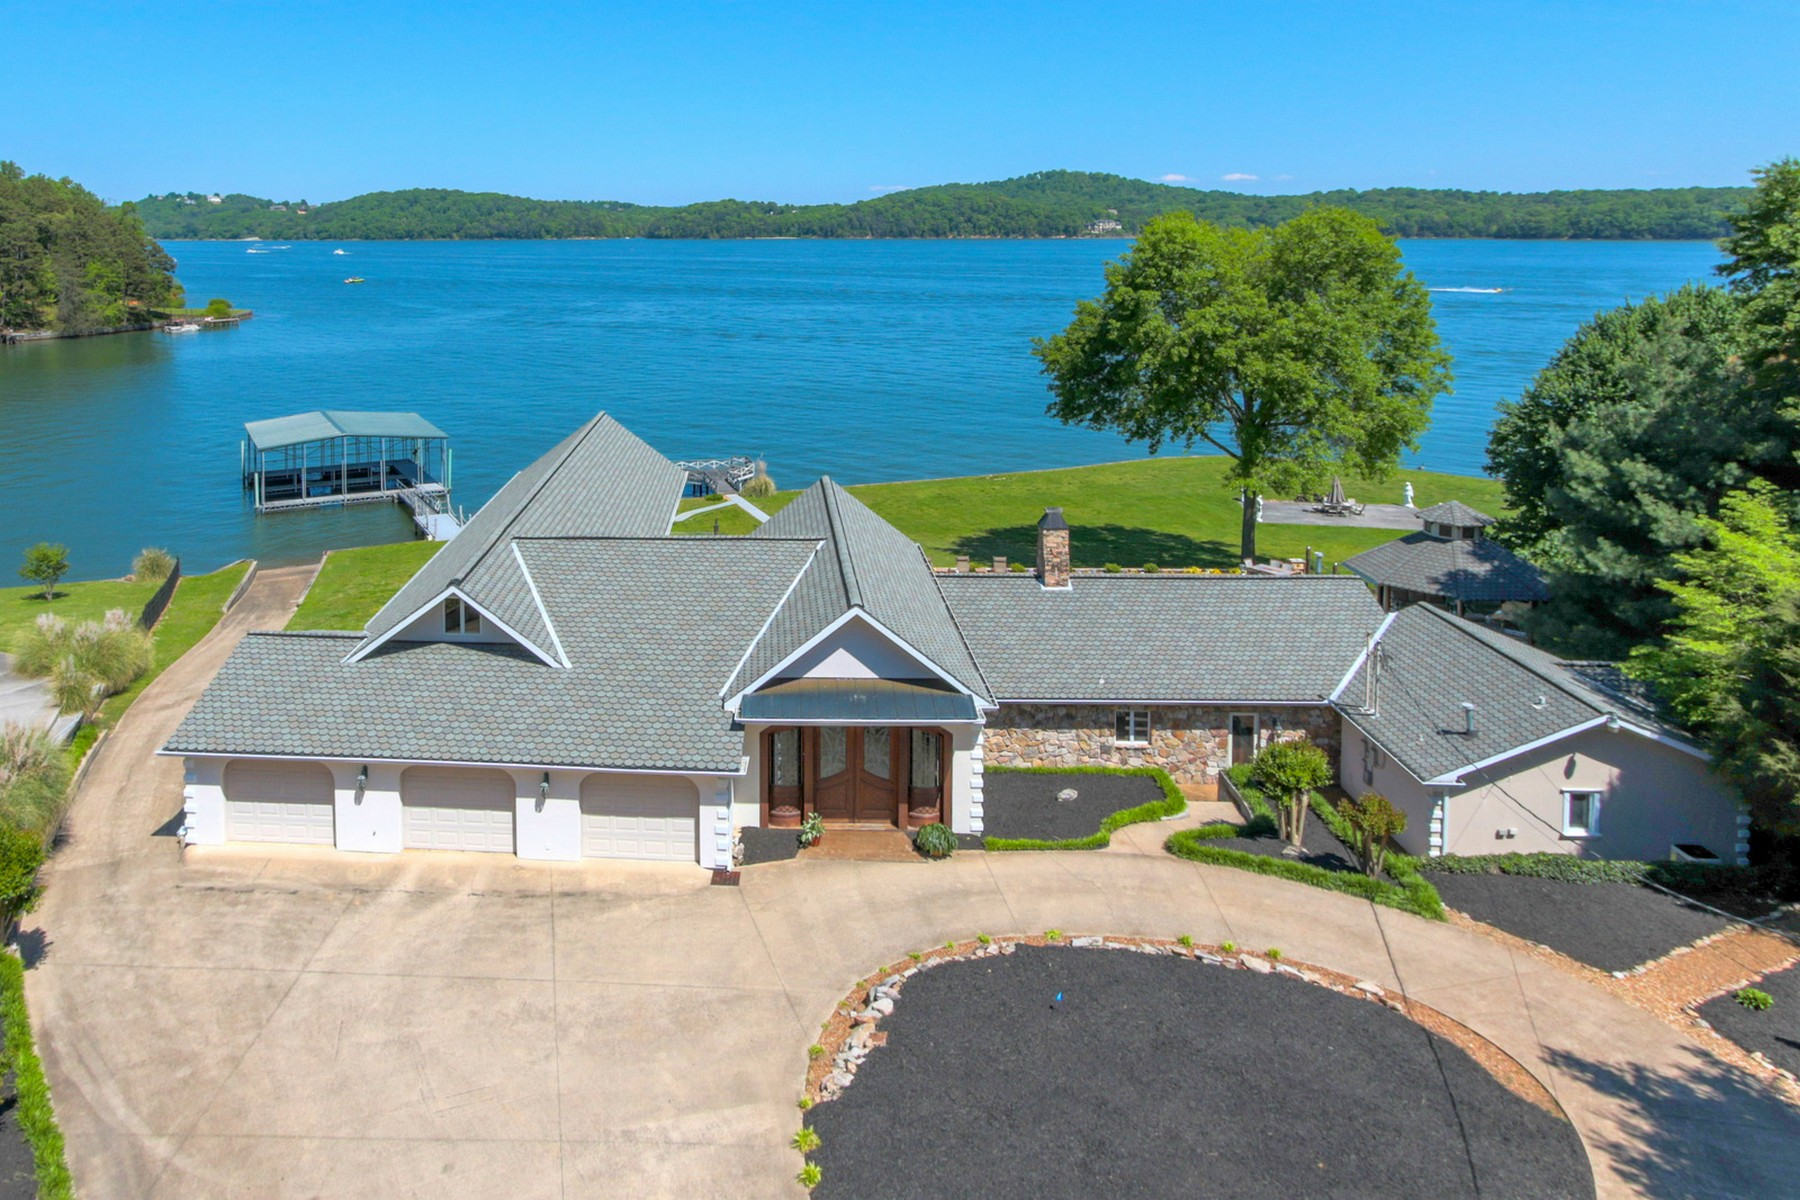 Moradia para Venda às Prime Waterfront Home on Lake Chickamauga 2133 Clematis Drive Hixson, Tennessee, 37343 Estados Unidos